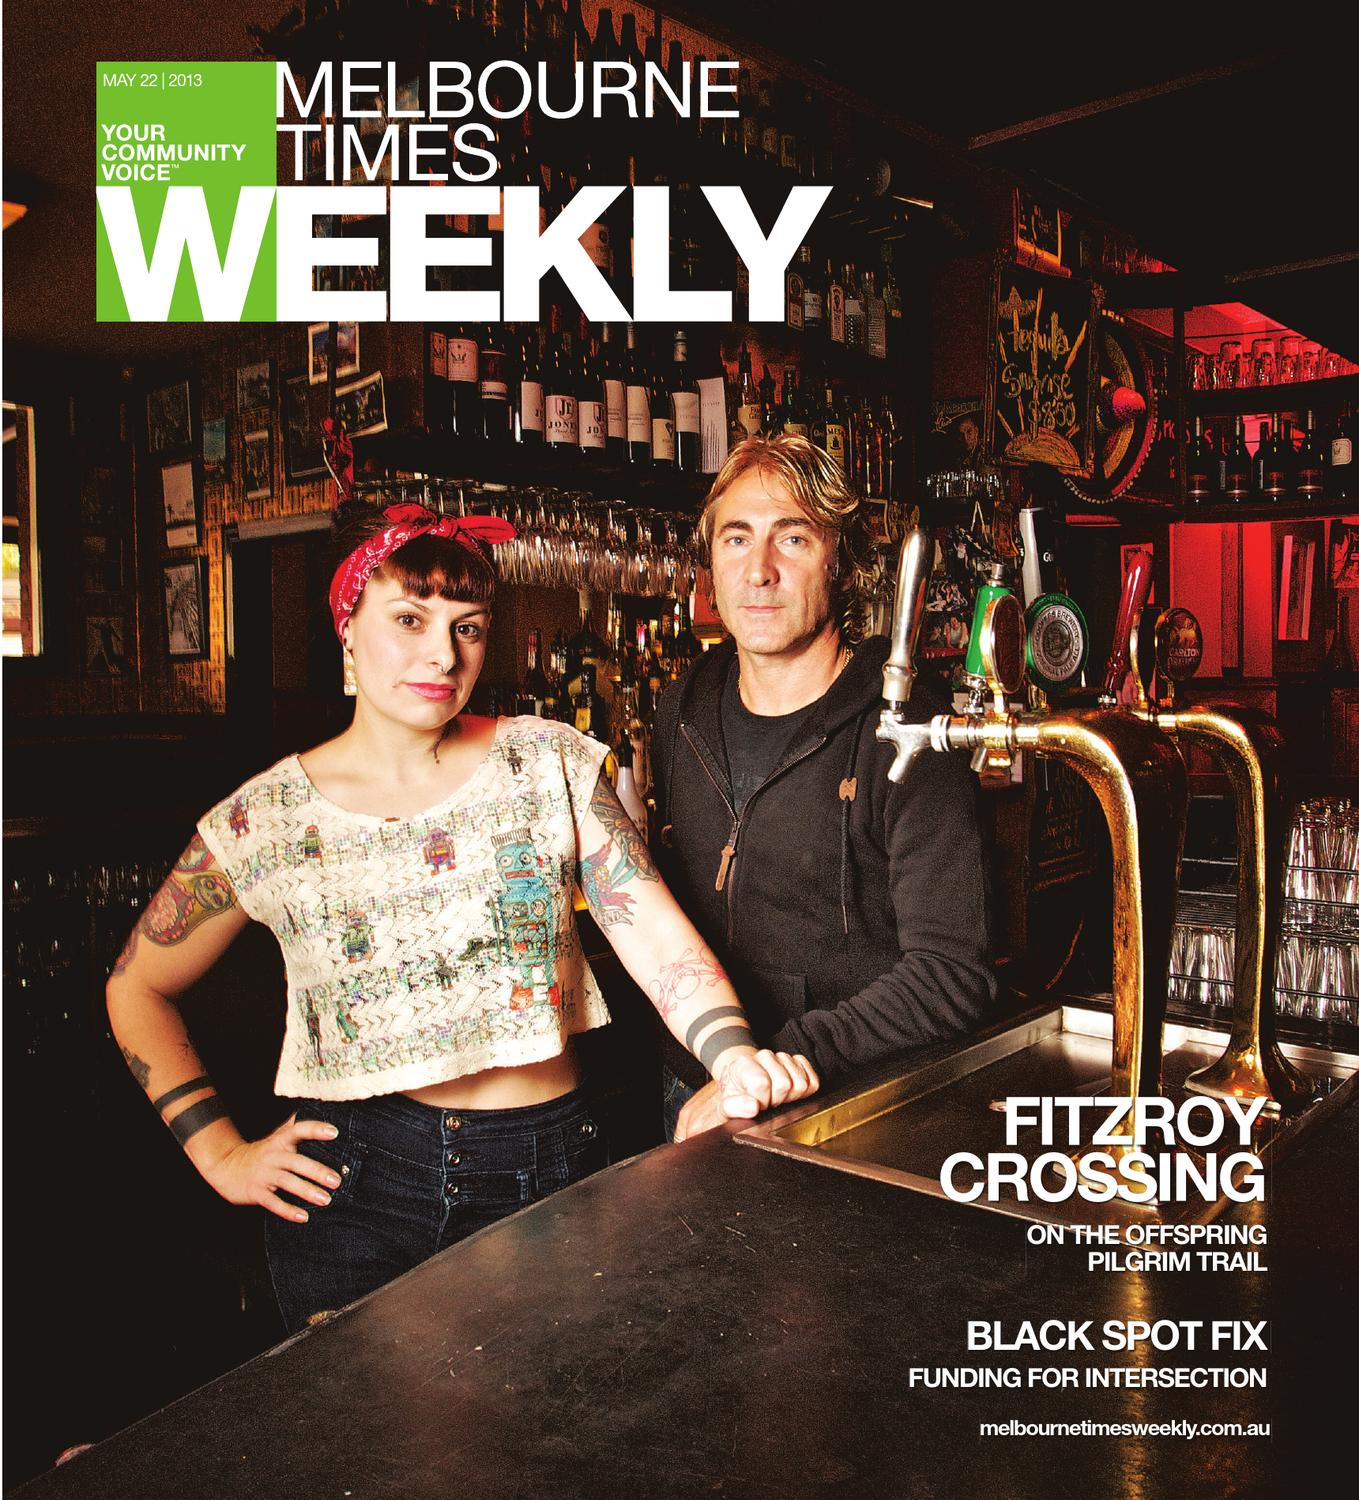 Melbourne Times Weekly by The Weekly Review - issuu